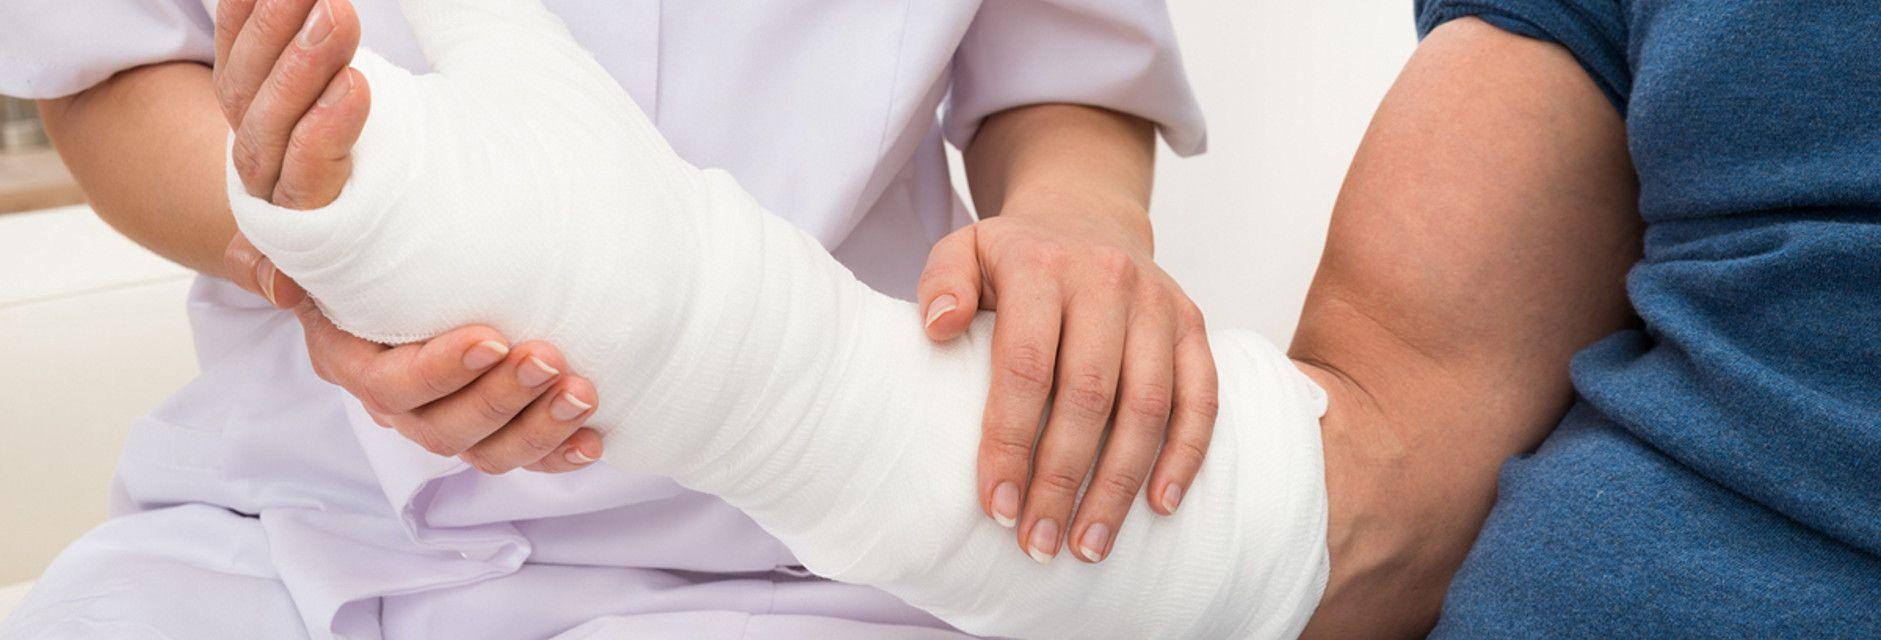 where has the best fractures physicians